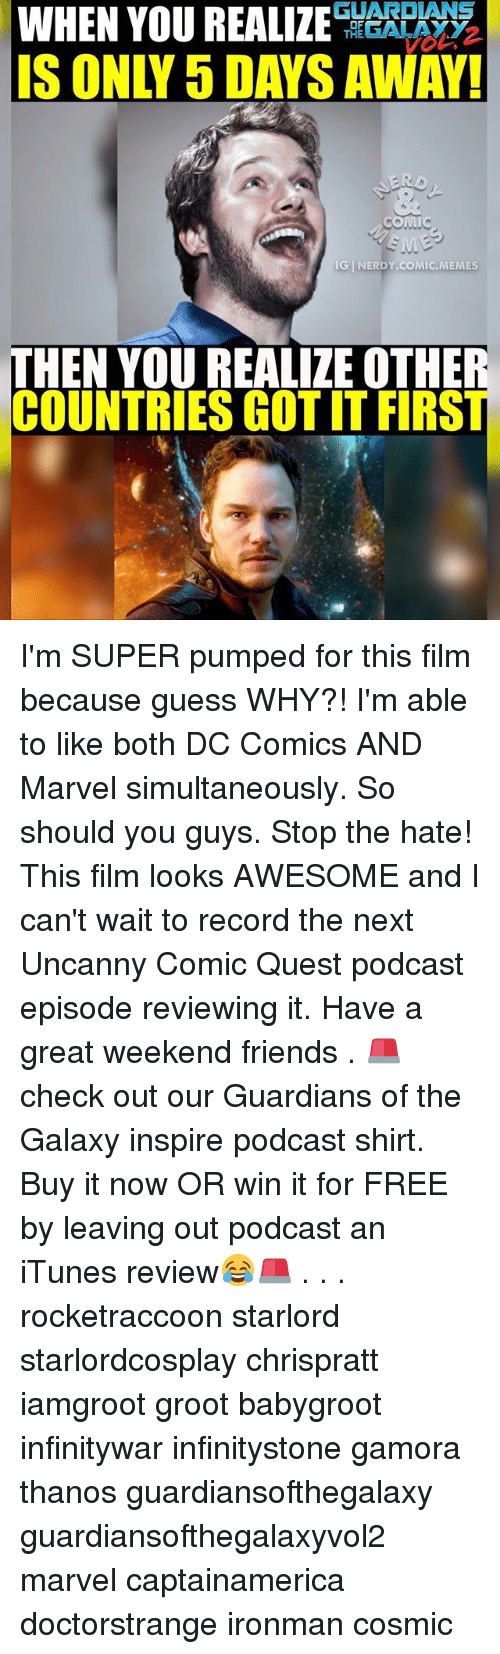 have a great weekend: WHEN YOU REALIZE  GUARDIANS  OF  GALAXY  THE  COMIC  SME  IGINERDY.coMIC.MEMES  HEN YOU REALIZE OTHE  COUNTRIES GOTITFIRS I'm SUPER pumped for this film because guess WHY?! I'm able to like both DC Comics AND Marvel simultaneously. So should you guys. Stop the hate! This film looks AWESOME and I can't wait to record the next Uncanny Comic Quest podcast episode reviewing it. Have a great weekend friends . 🚨check out our Guardians of the Galaxy inspire podcast shirt. Buy it now OR win it for FREE by leaving out podcast an iTunes review😂🚨 . . . rocketraccoon starlord starlordcosplay chrispratt iamgroot groot babygroot infinitywar infinitystone gamora thanos guardiansofthegalaxy guardiansofthegalaxyvol2 marvel captainamerica doctorstrange ironman cosmic